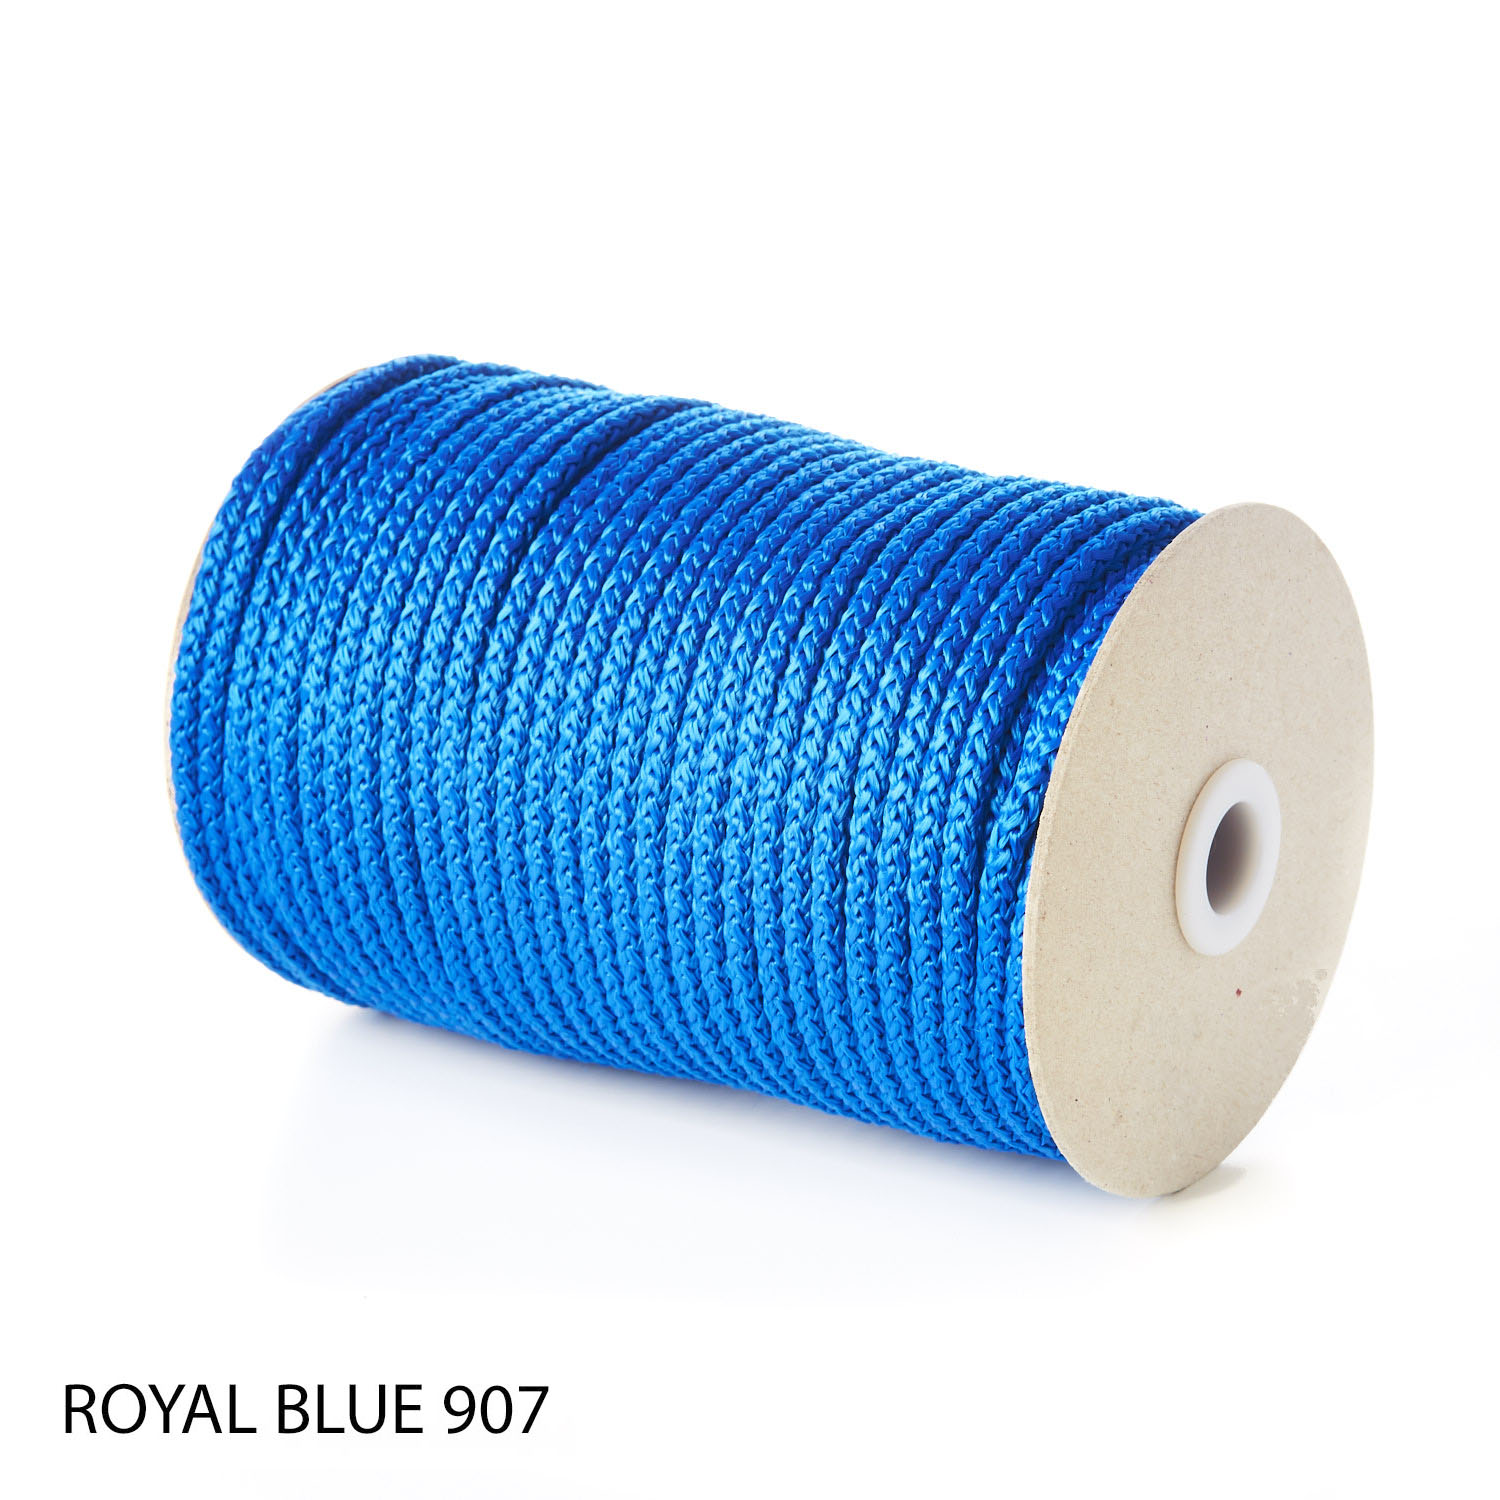 Blue Polypropylene Knitted Cords Round String Rope Strong